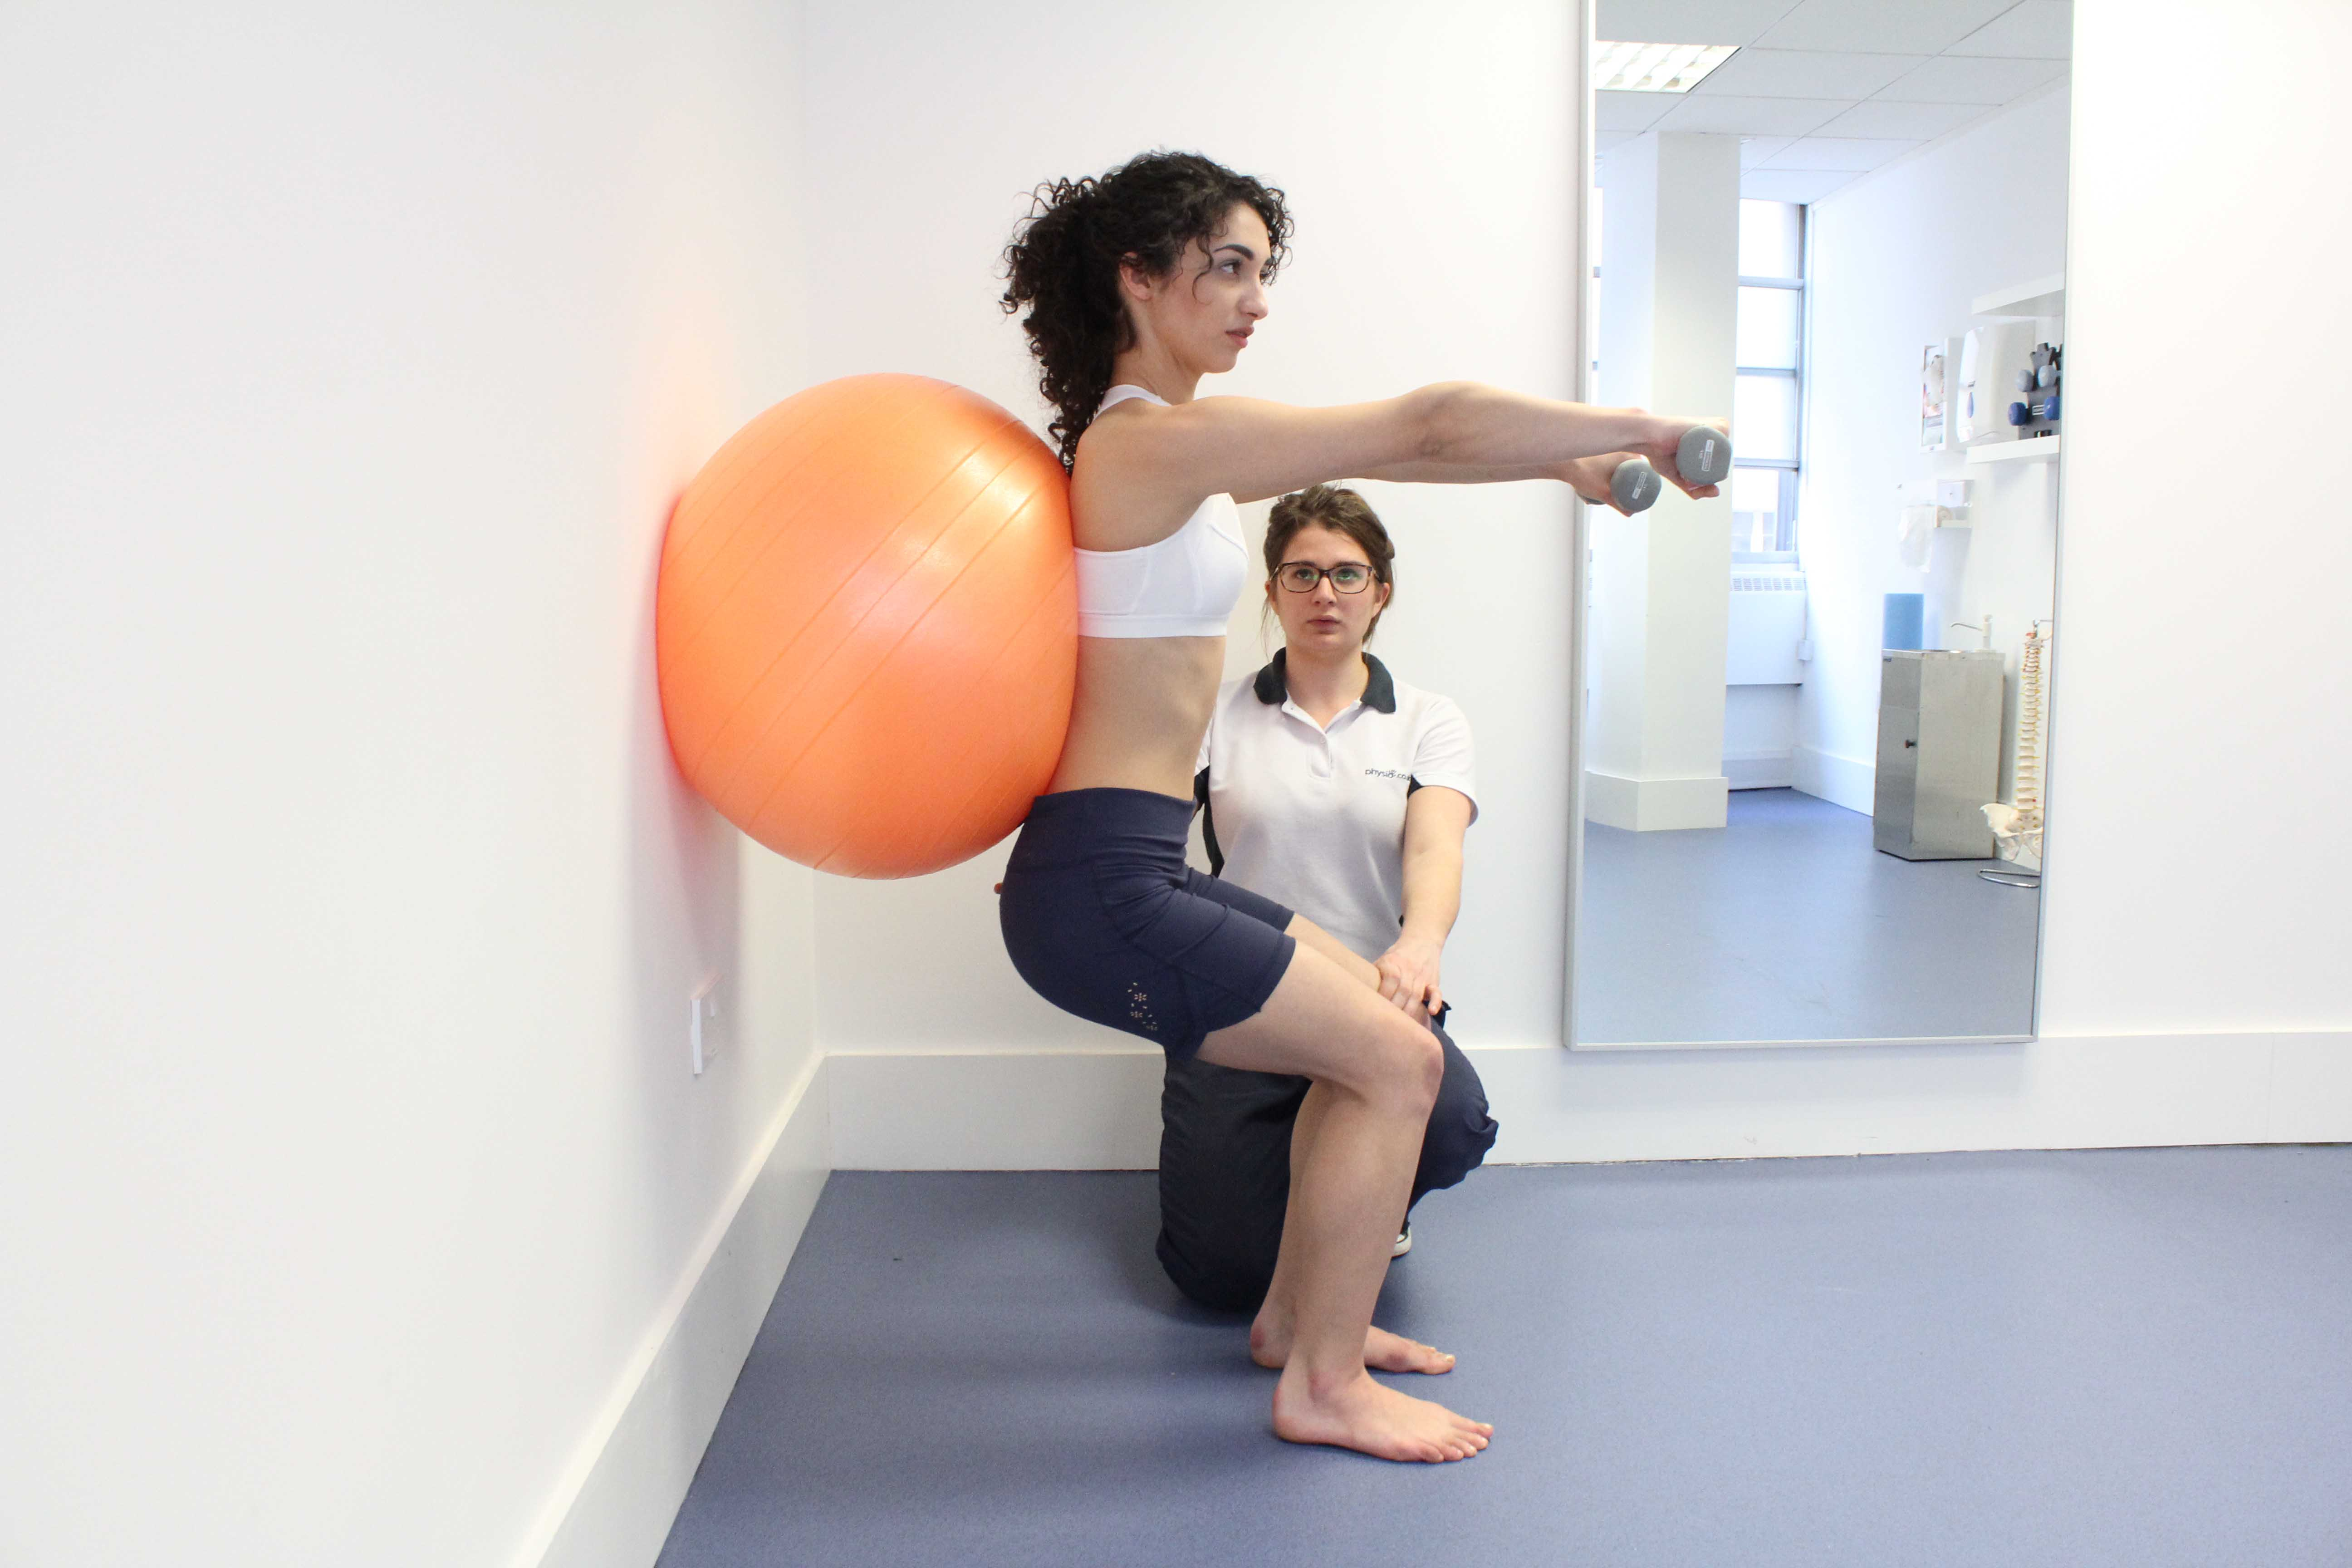 Leg strengthening exercises using squats and a gym ball with hand weights, under supervision of specialist MSK physiotherapist